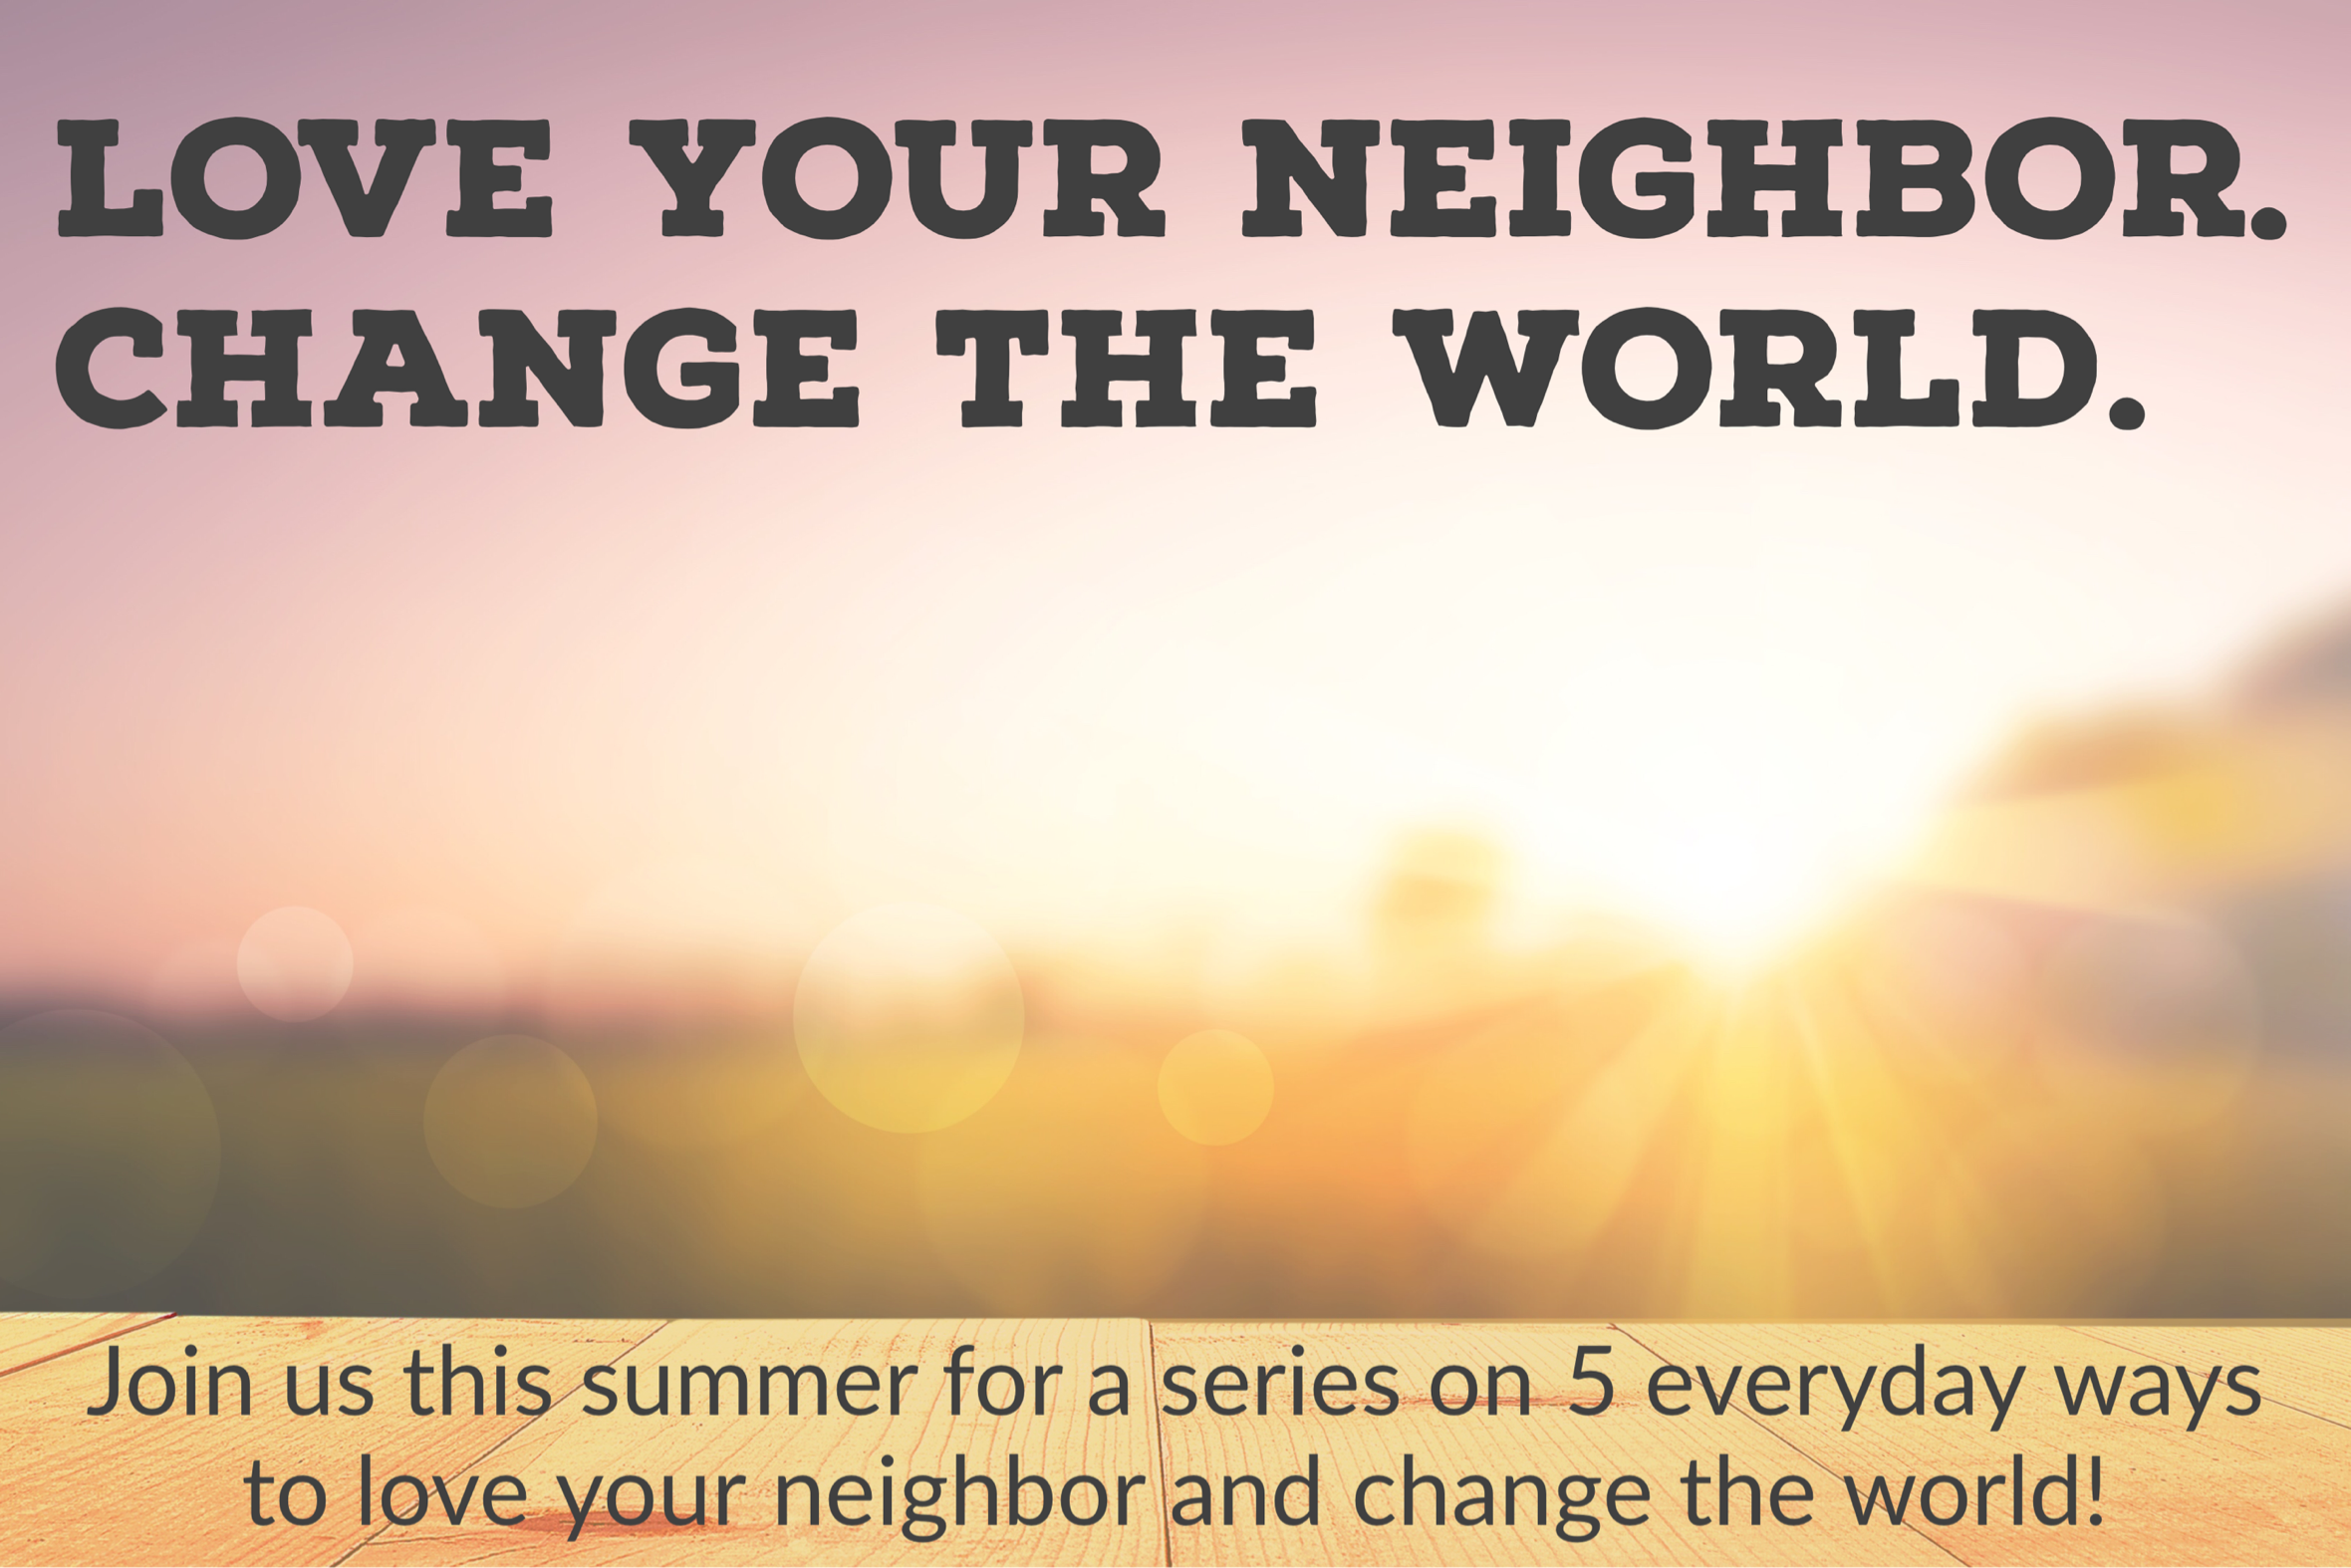 love your neighbor. change the world.